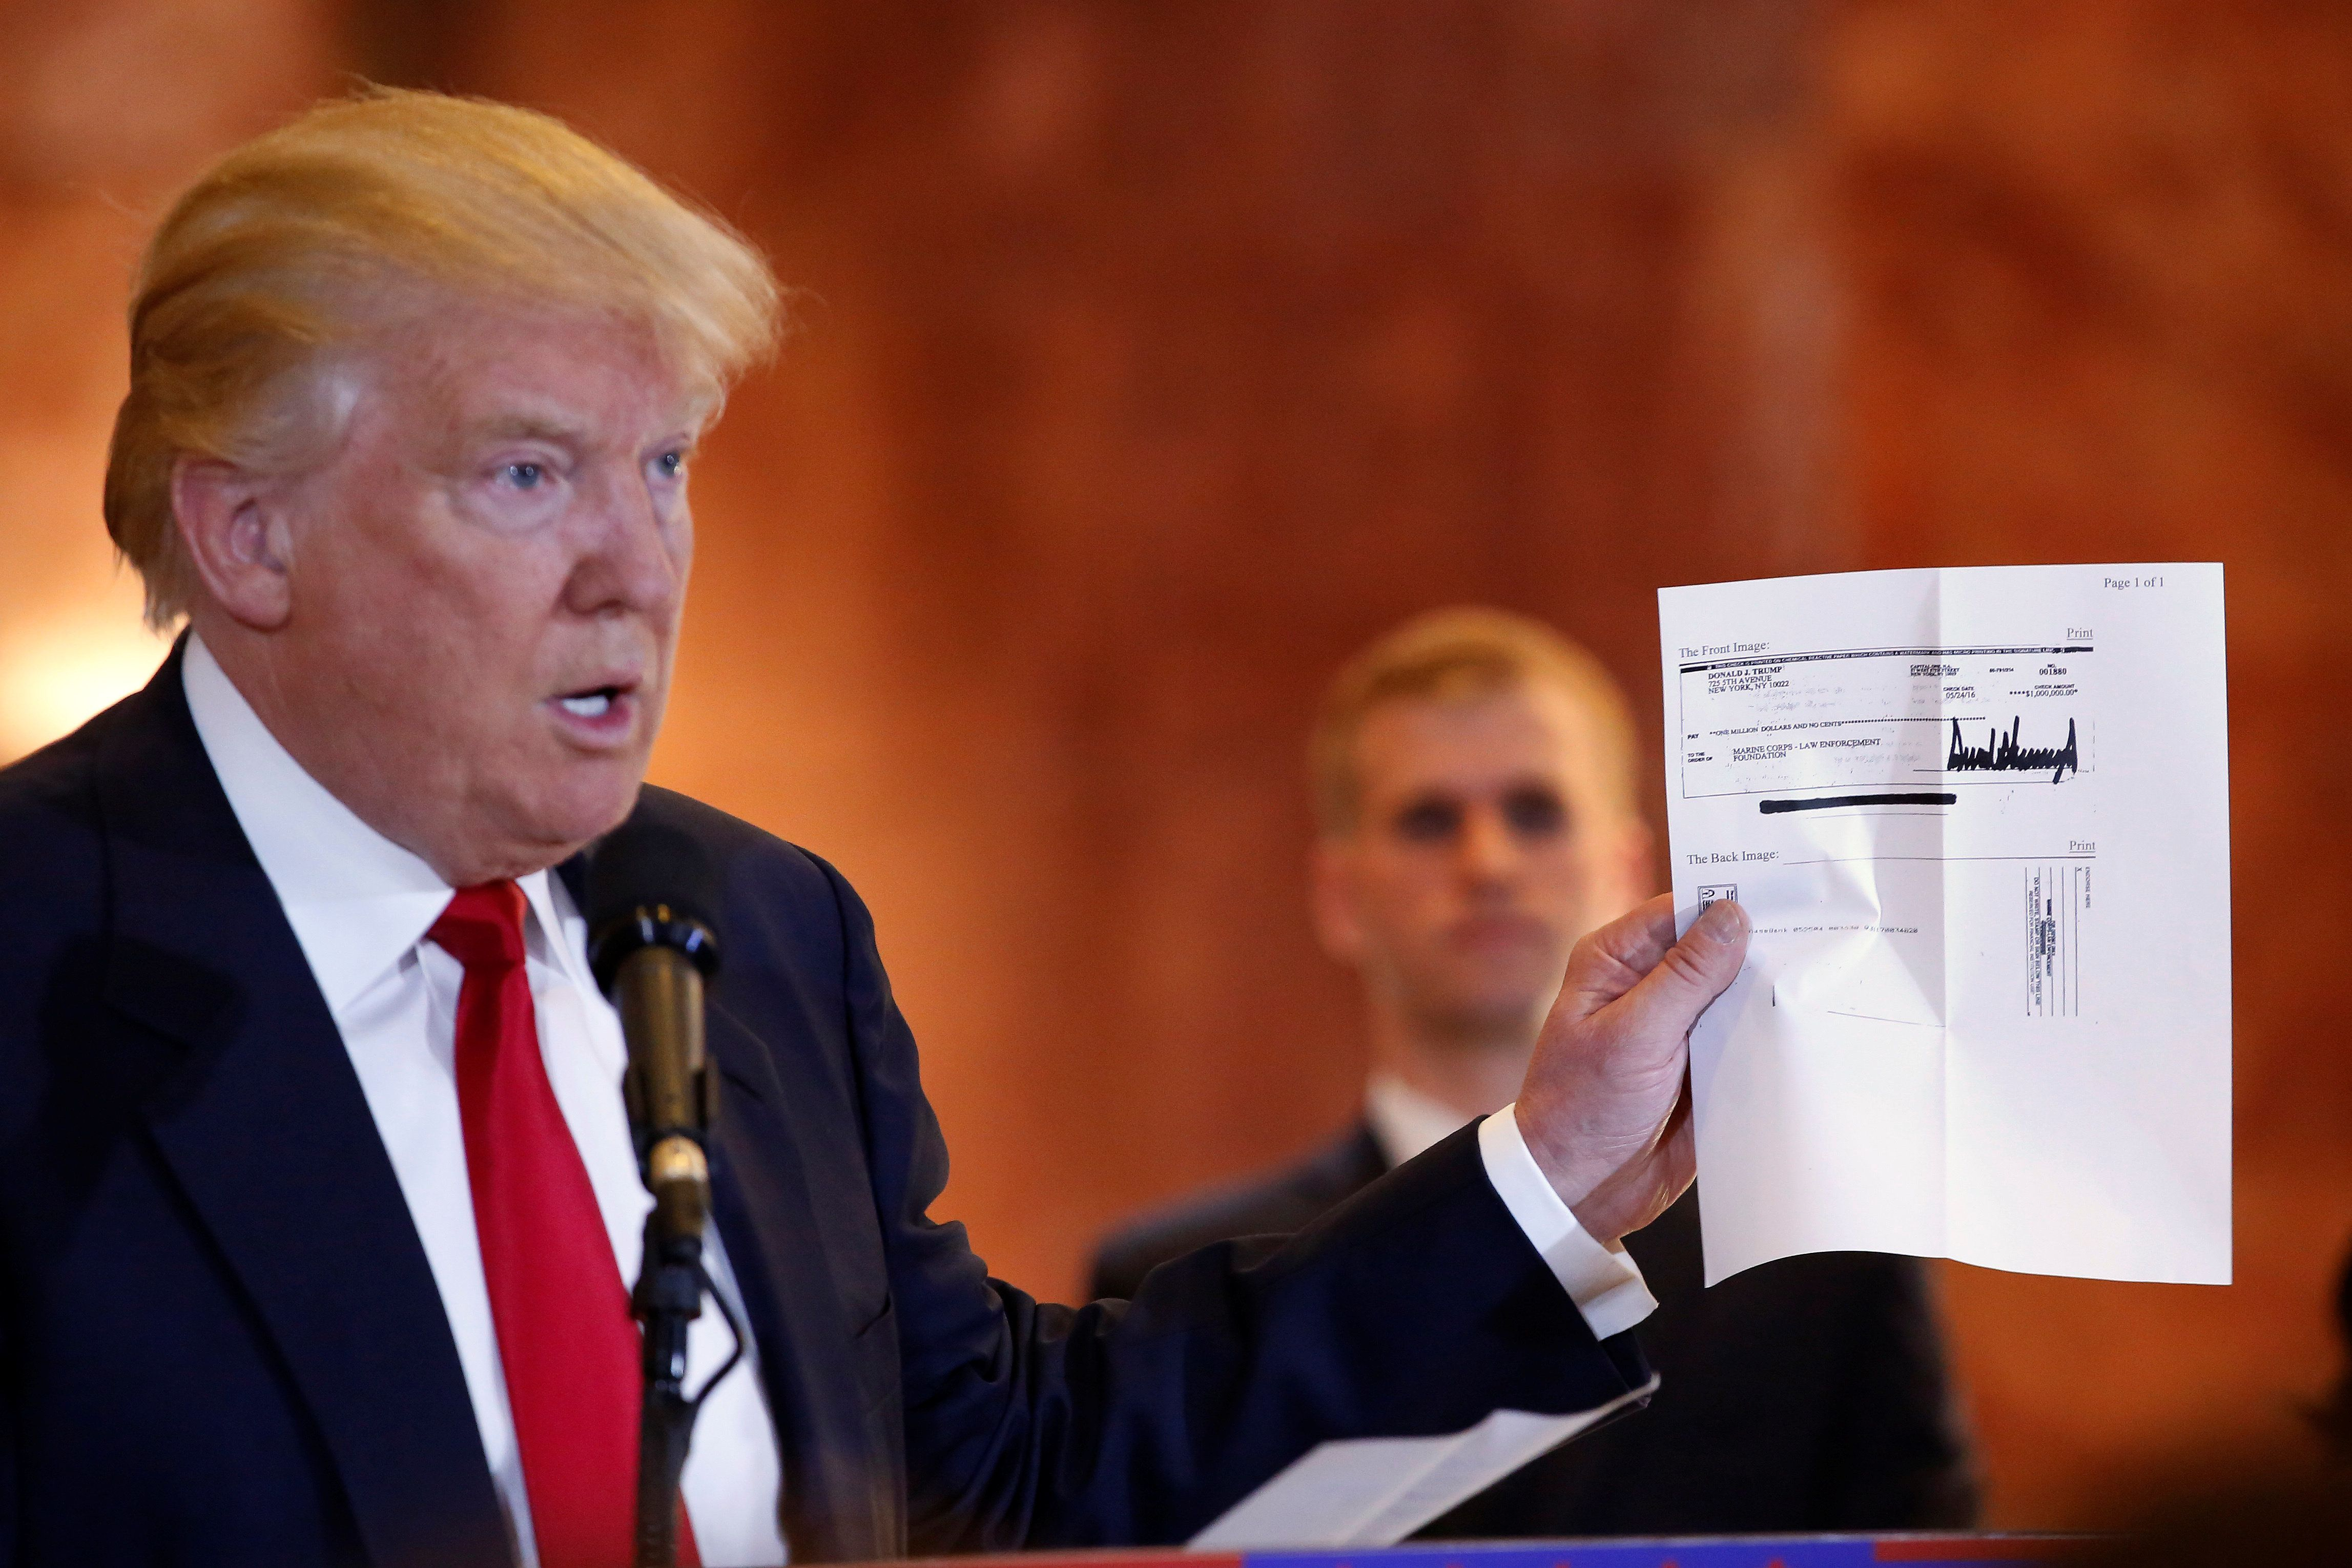 Donald Trump sayshe wants to help veterans, including with the checks he just sent to several charities.